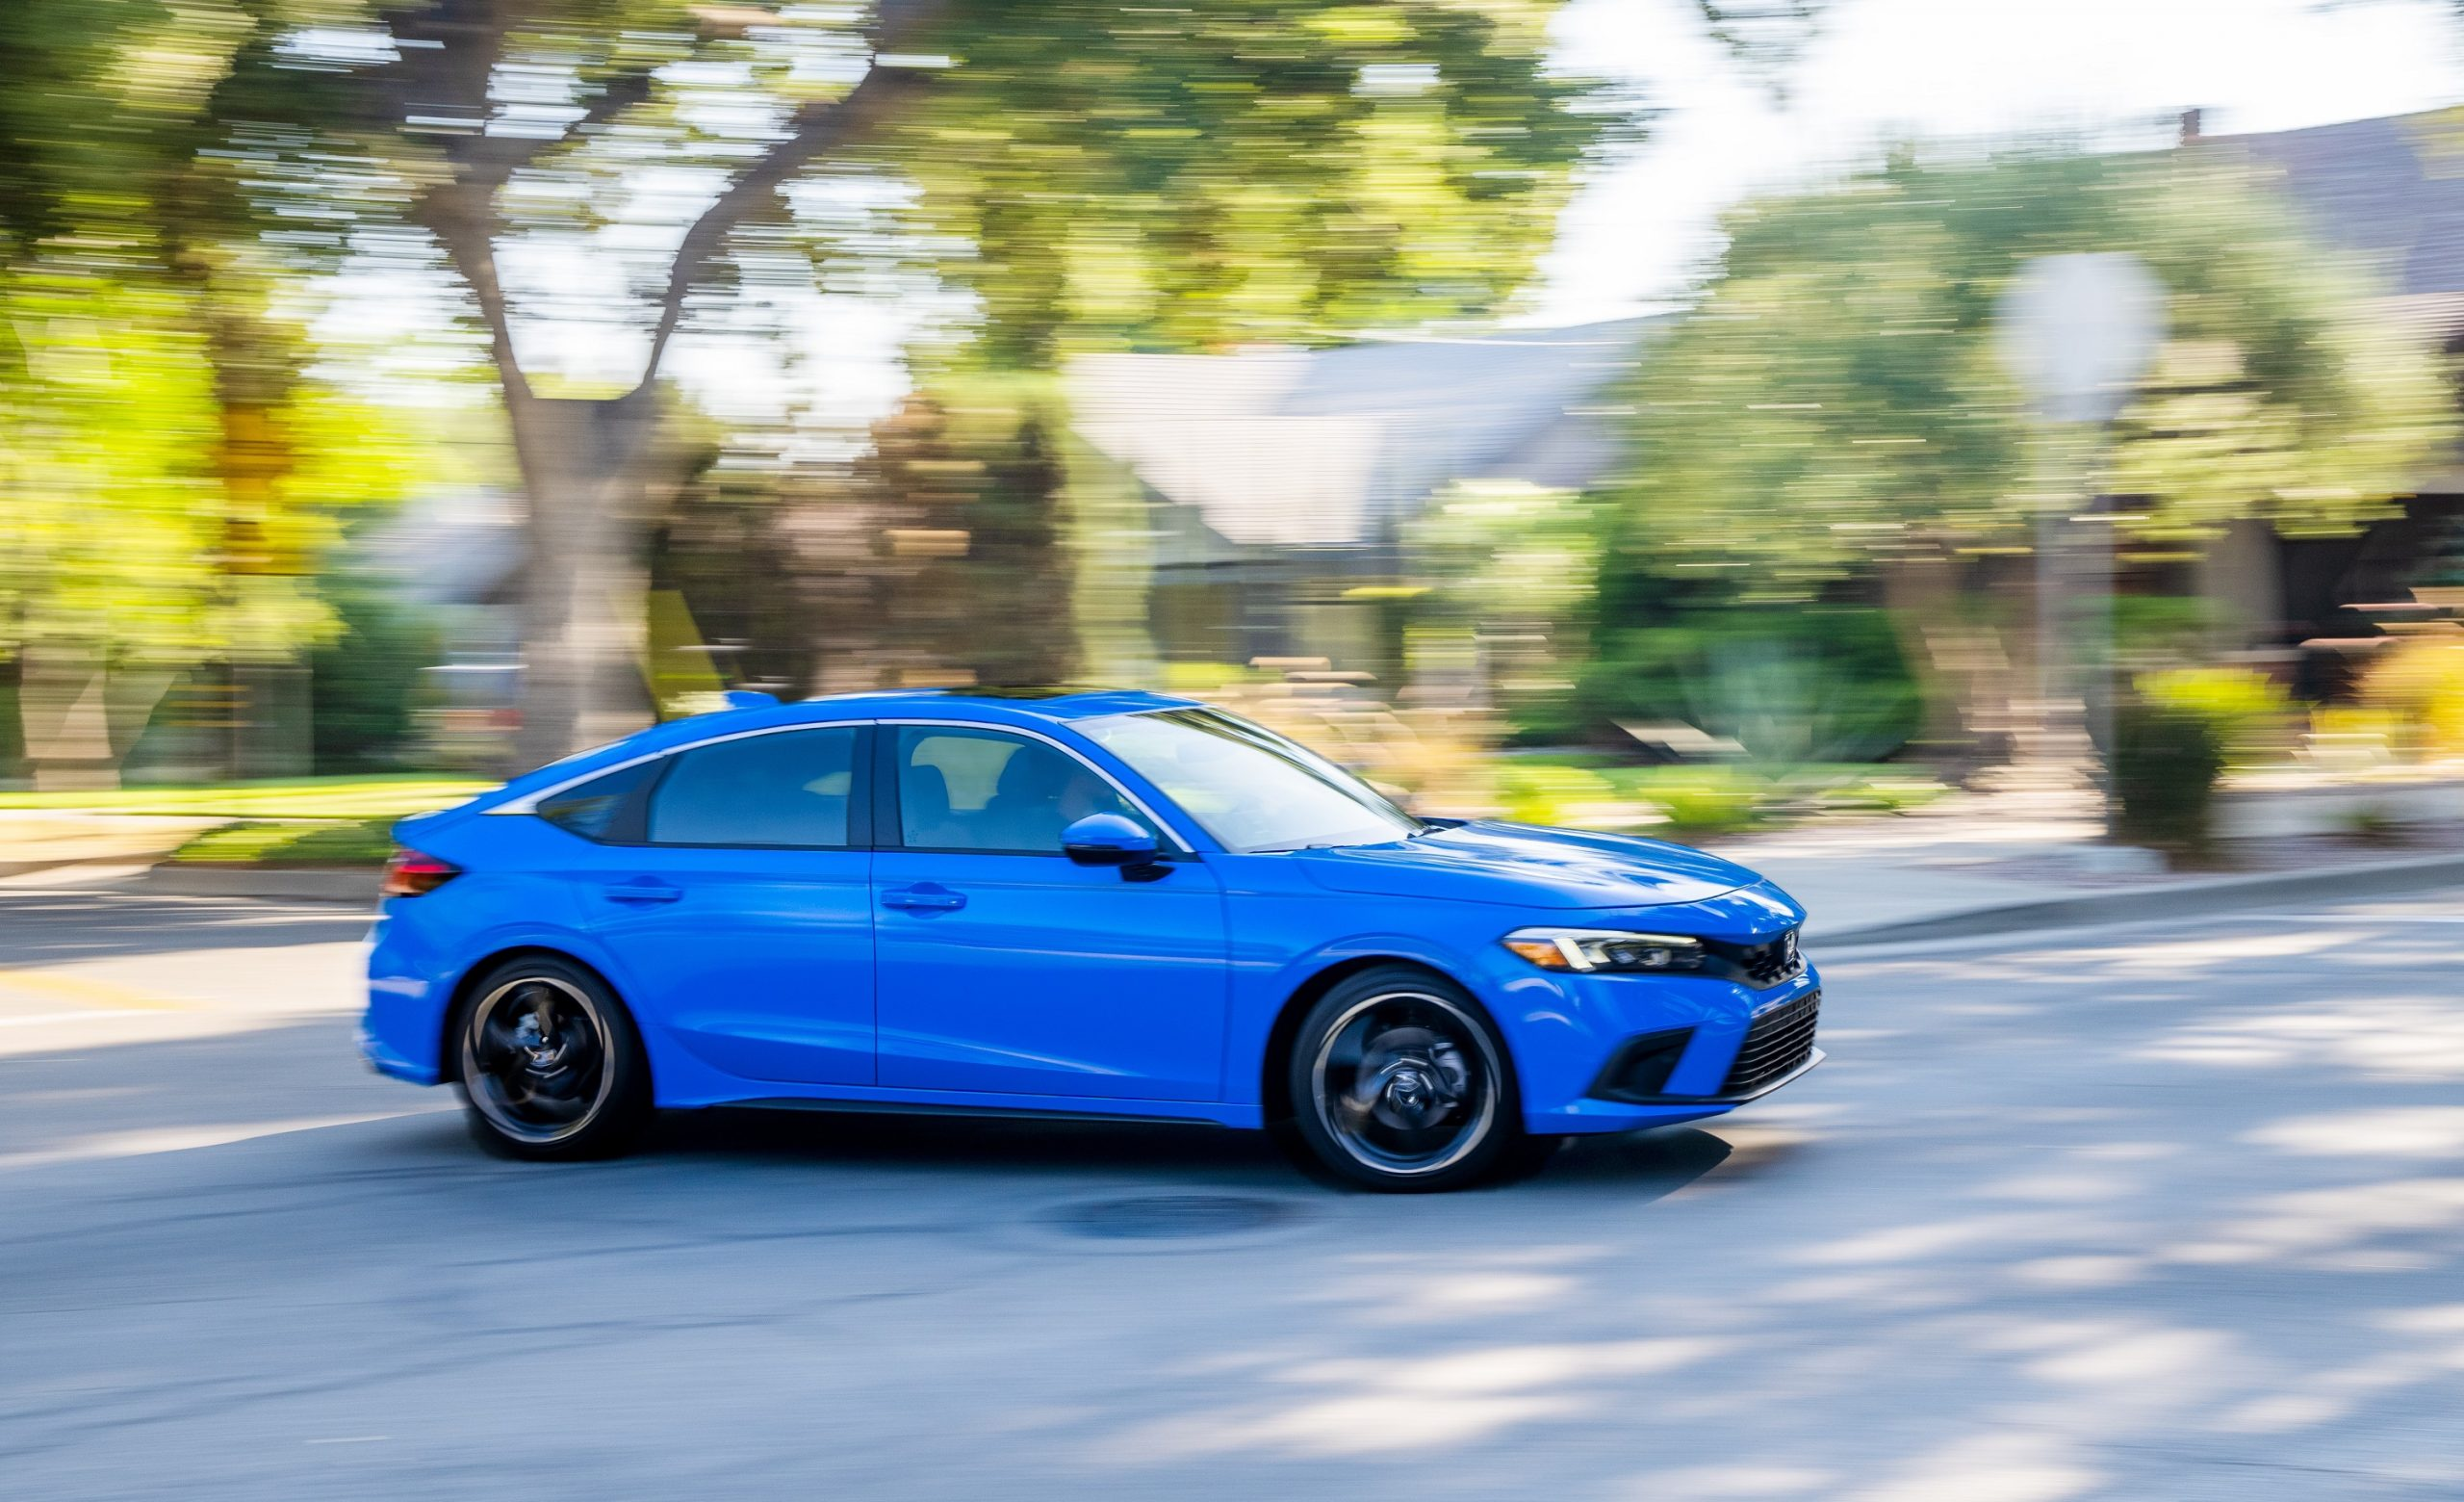 A blue 2022 Honda Civic hatchback shot in profile on a shaded street